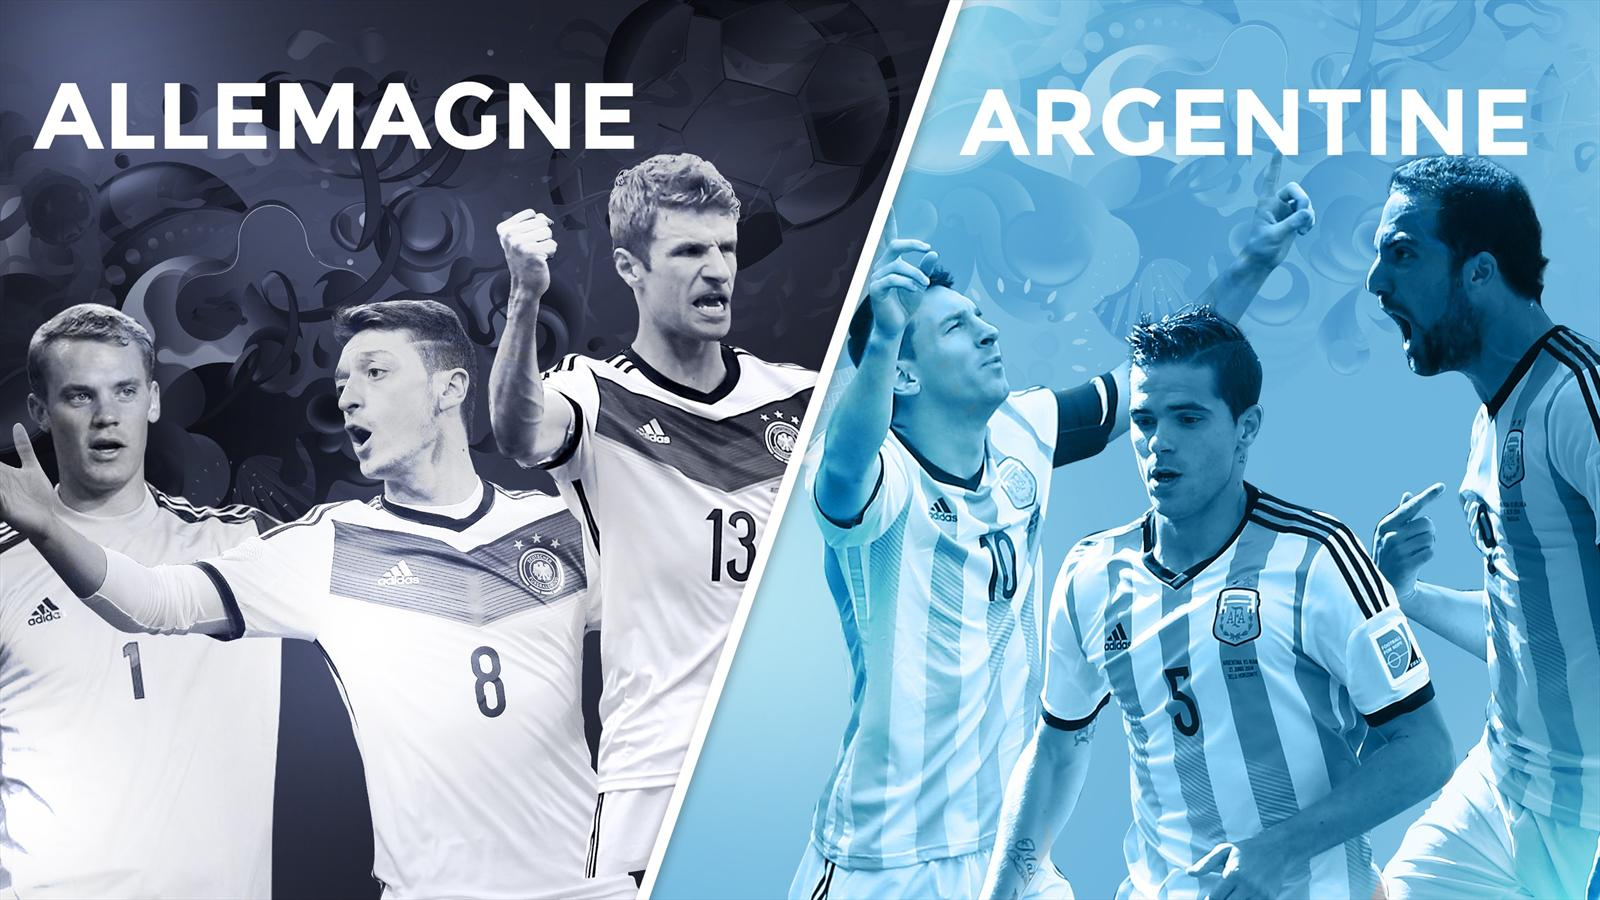 Match Allemagne - Argentine en direct live streaming sur TF1 et beIN Sport 1HD